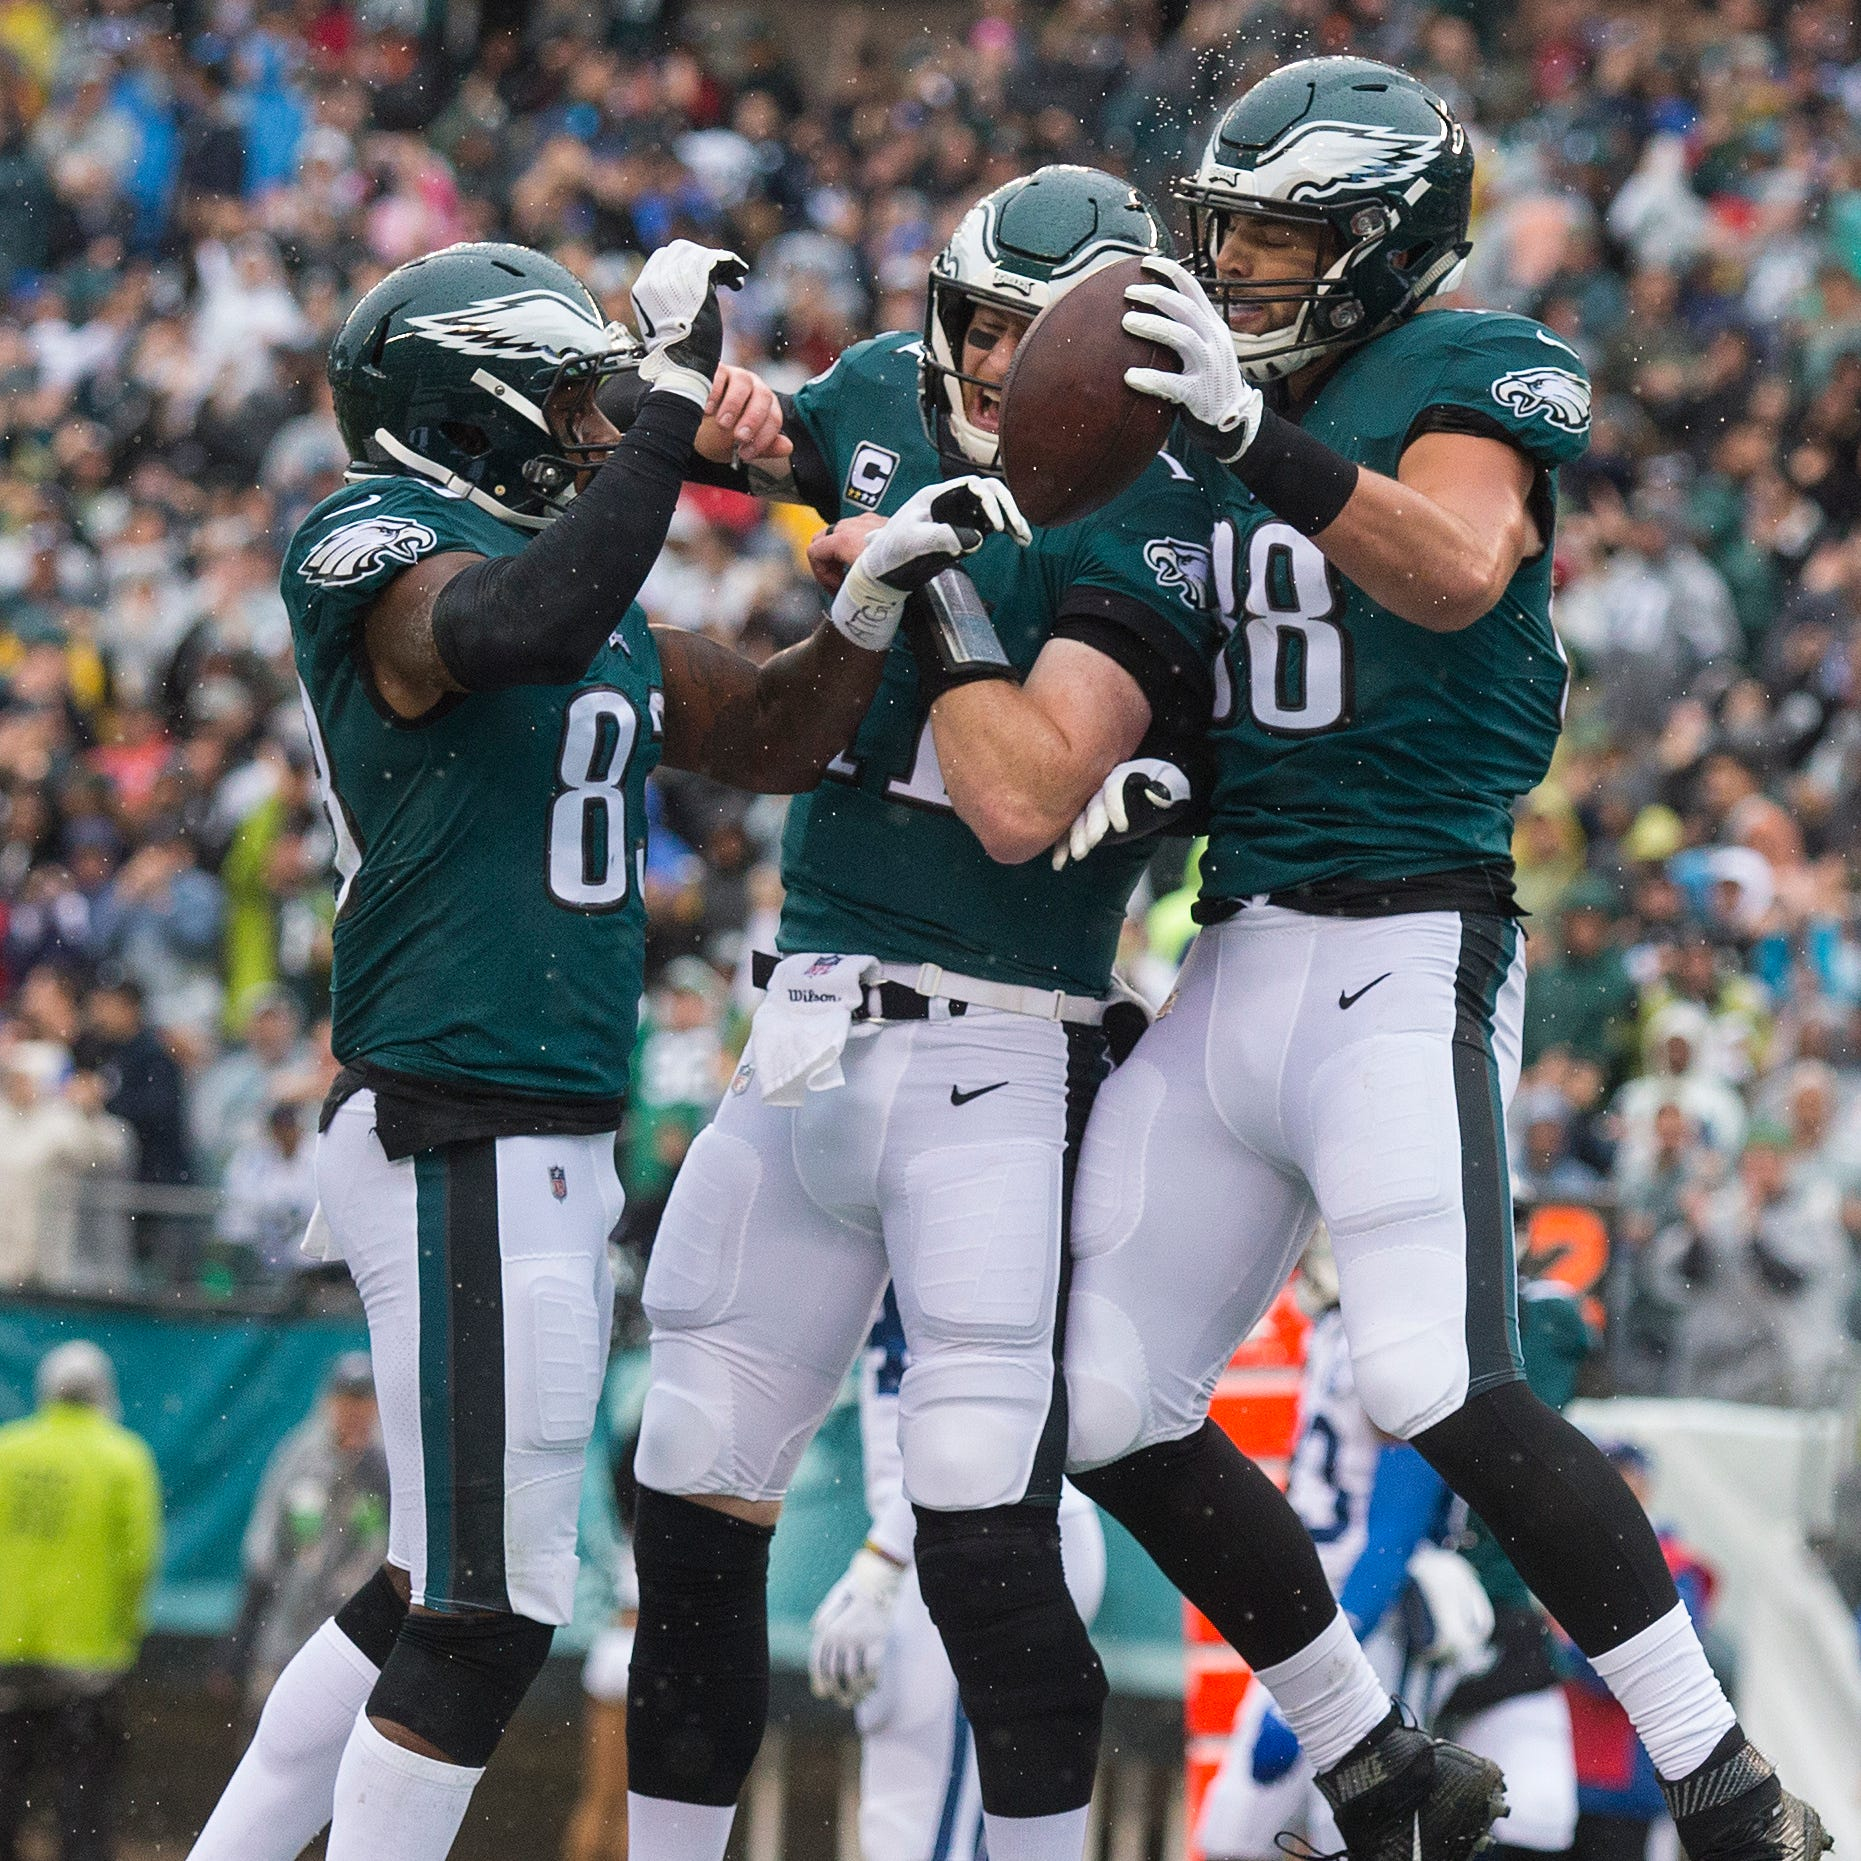 Carson Wentz starts strong in return, and Eagles barely hold on at the end